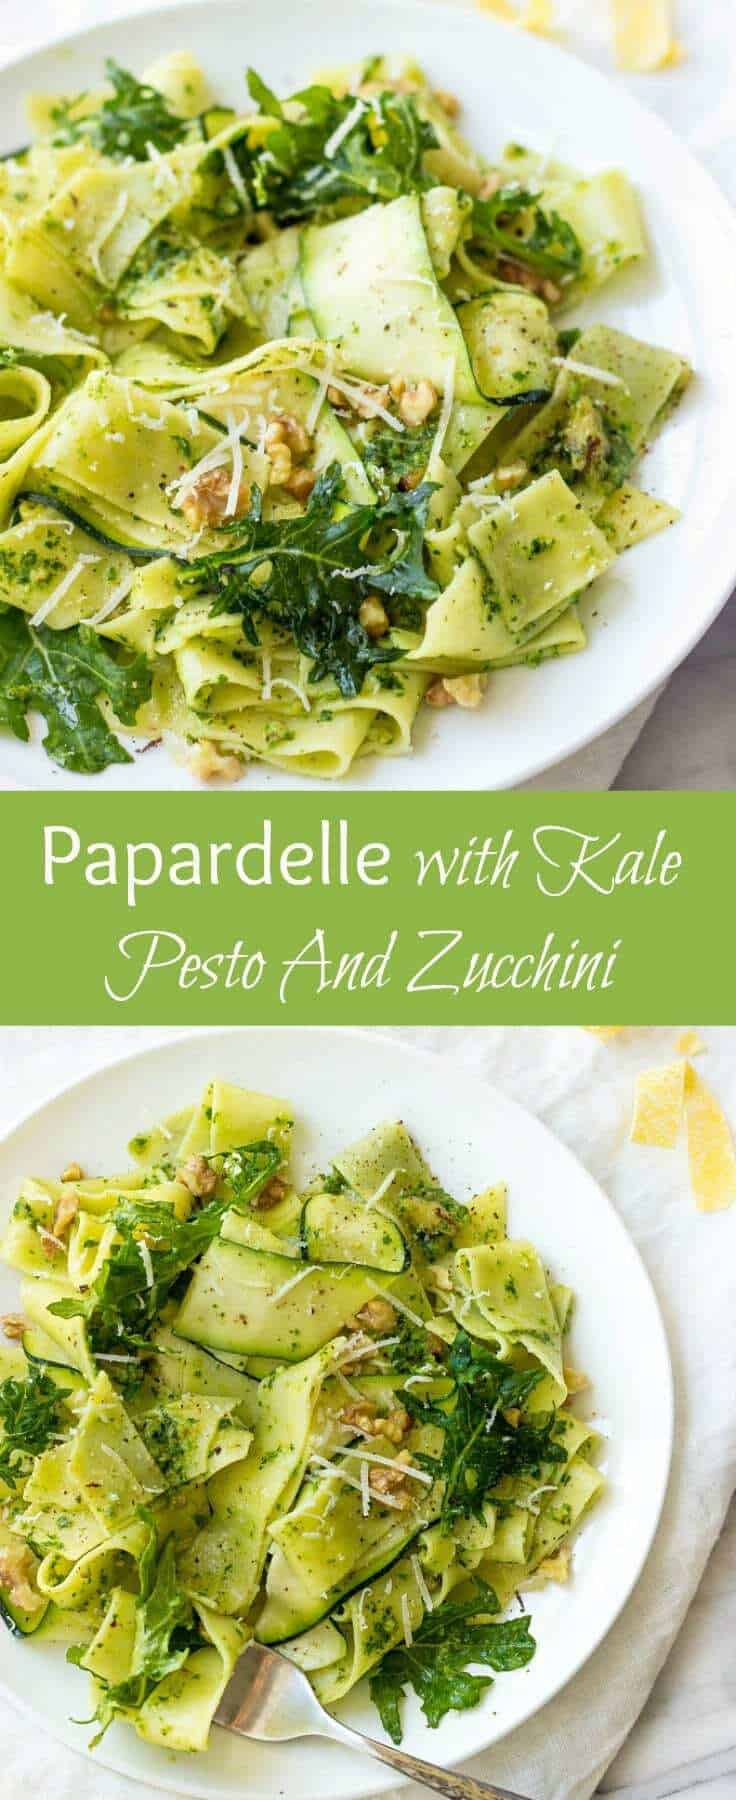 Papardelle Pasta | Healthy Pasta Recipes | Healthy Pasta With Zucchini | Clean Eating Pasta